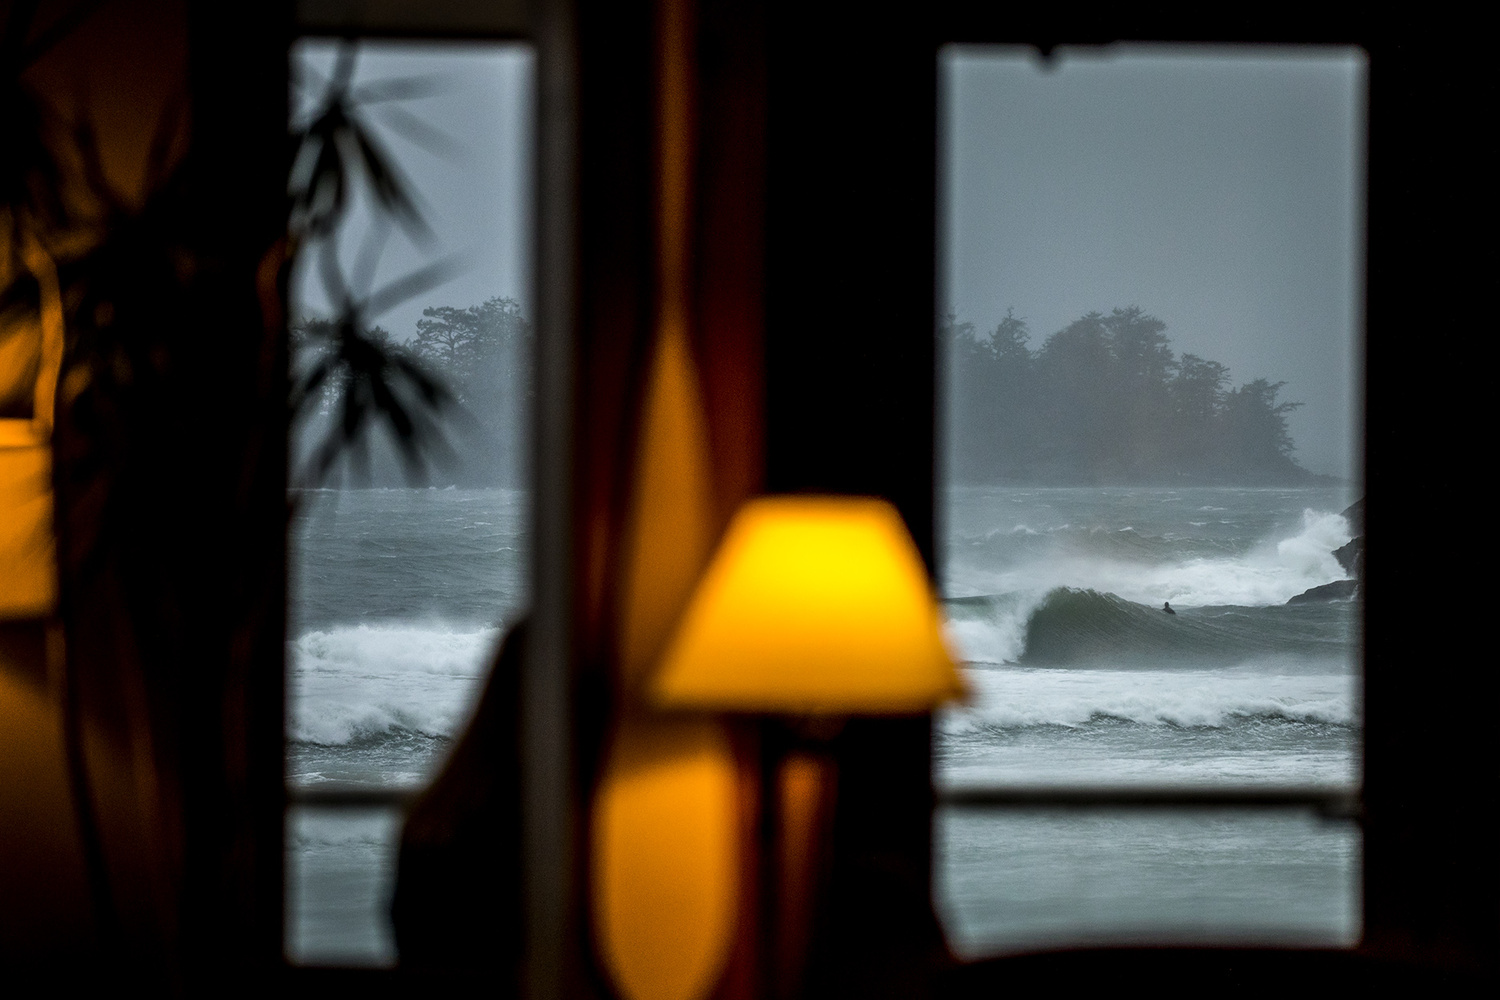 Room With A View by Marcus Paladino